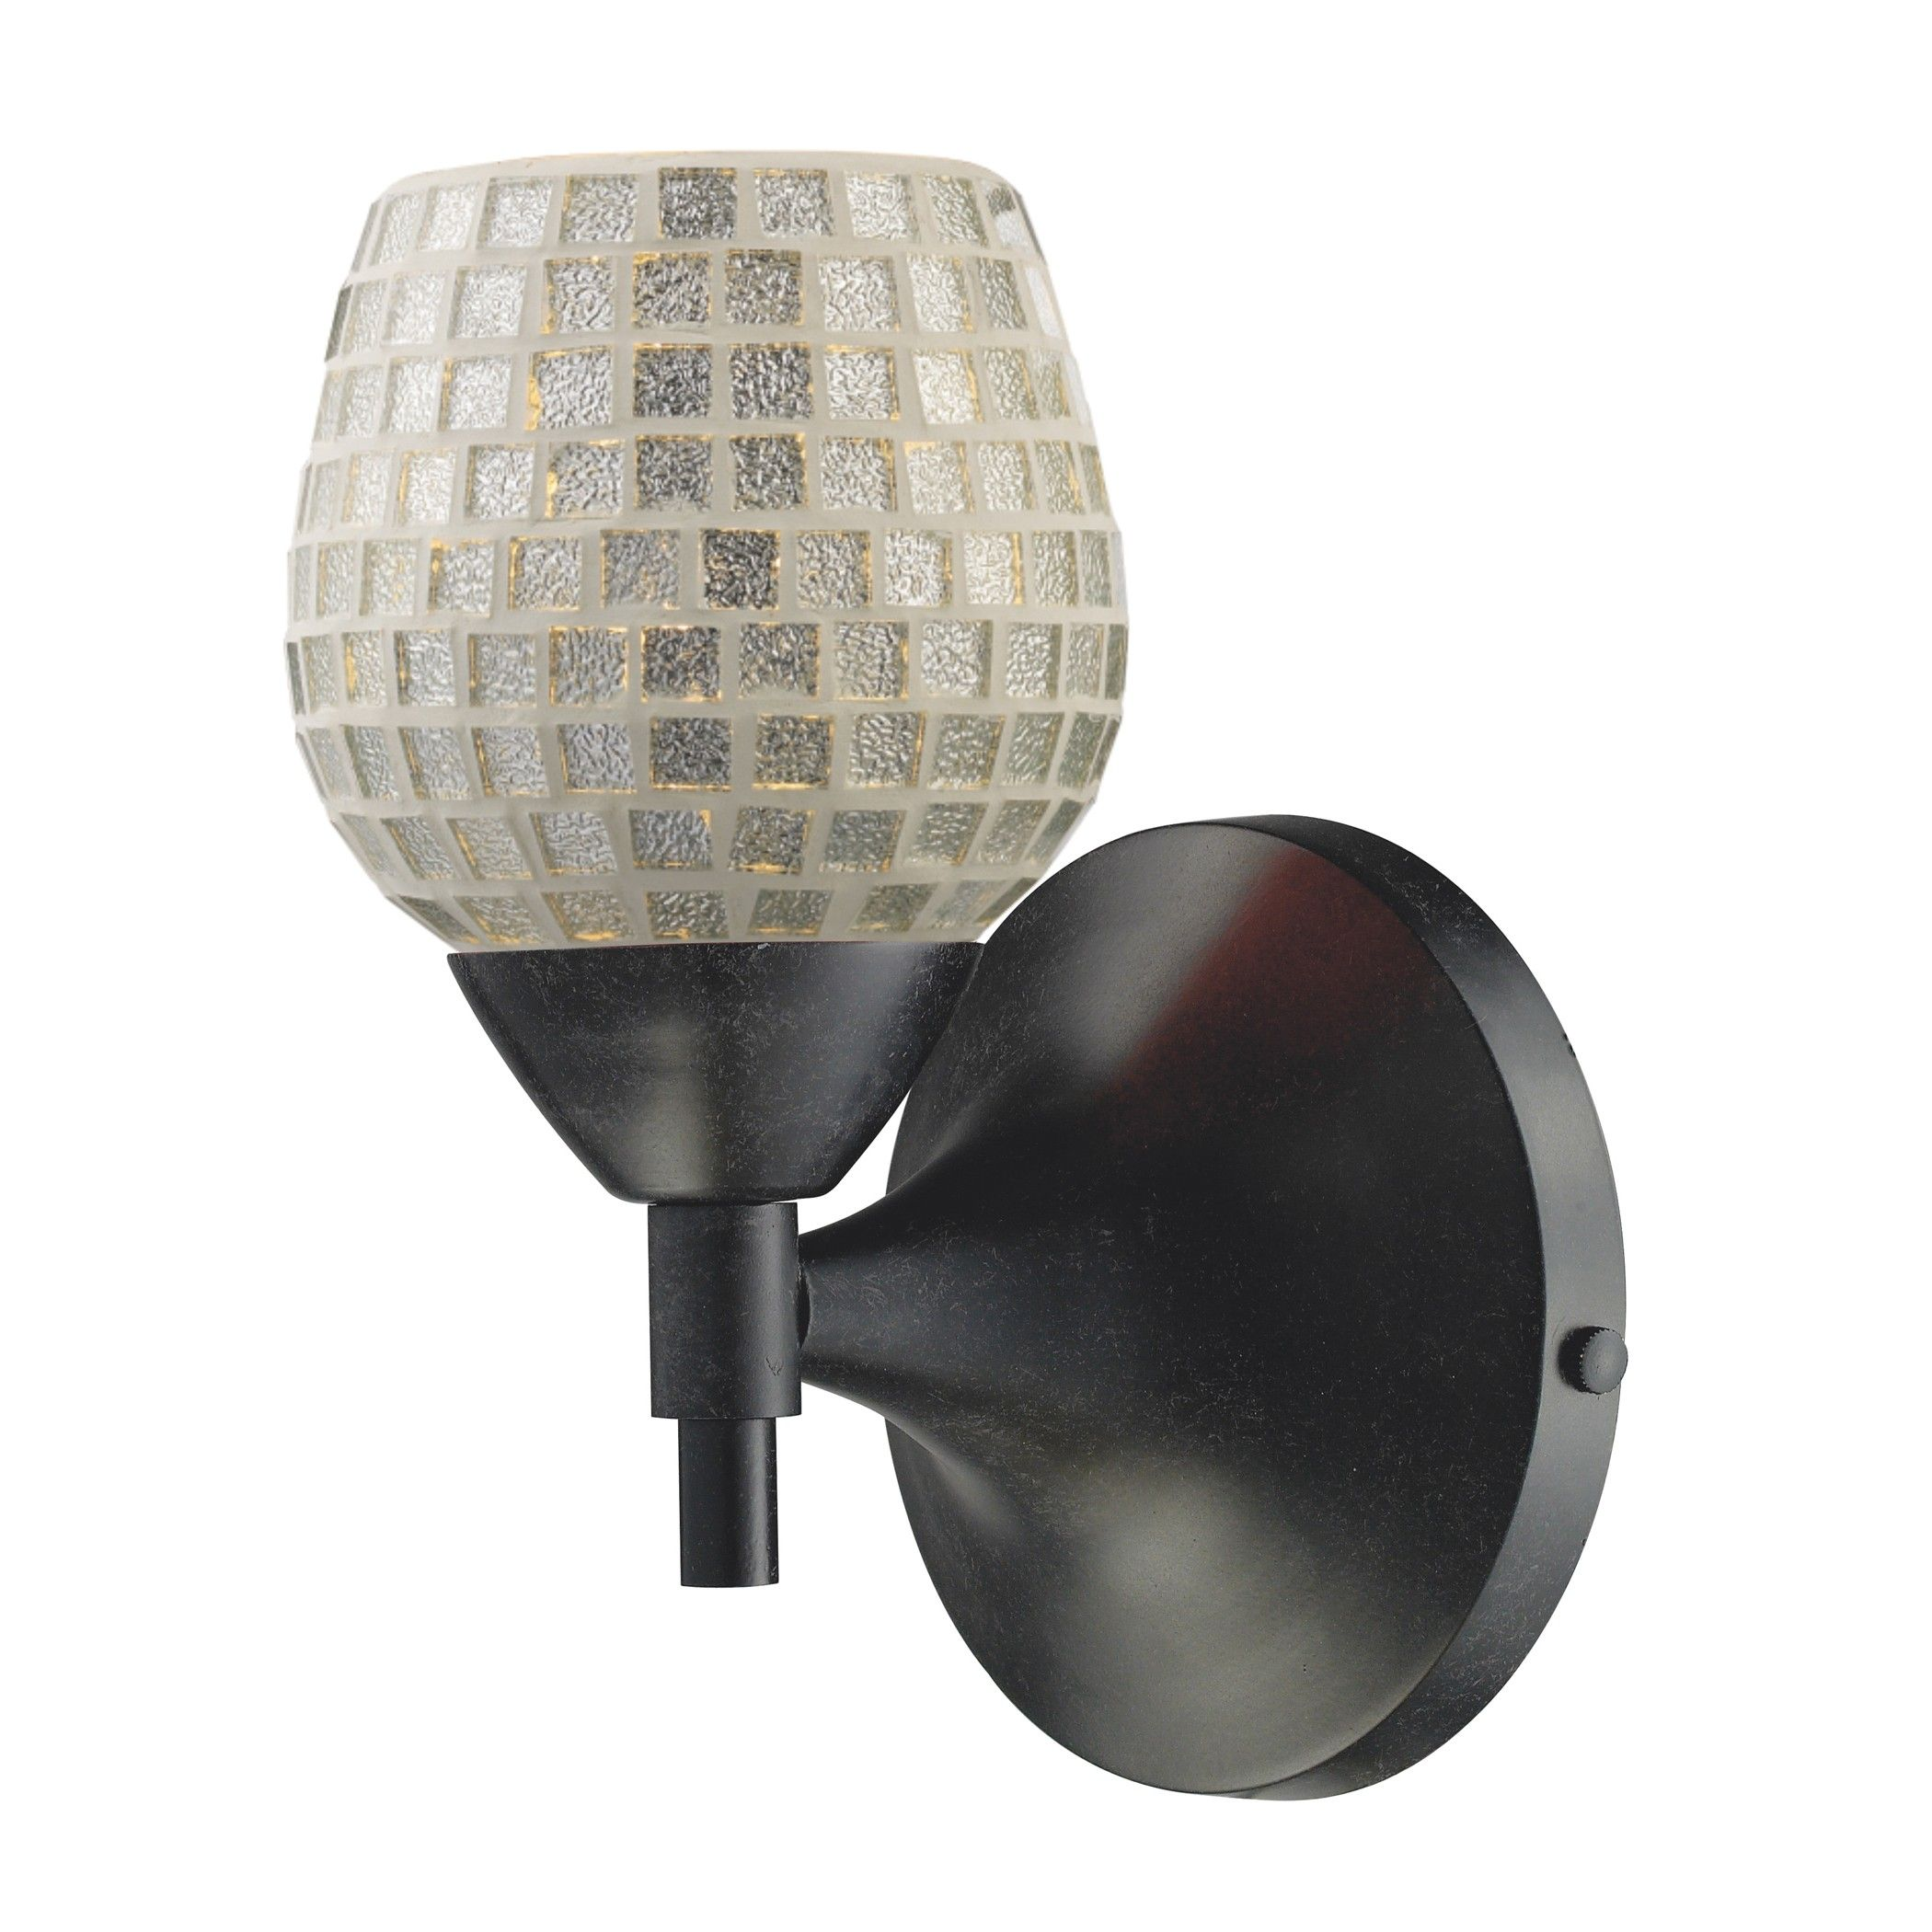 80 60w elk lighting 101501dr wht led celina wall sconce dark 80 60w elk lighting 101501dr wht led celina wall sconce dark amipublicfo Image collections